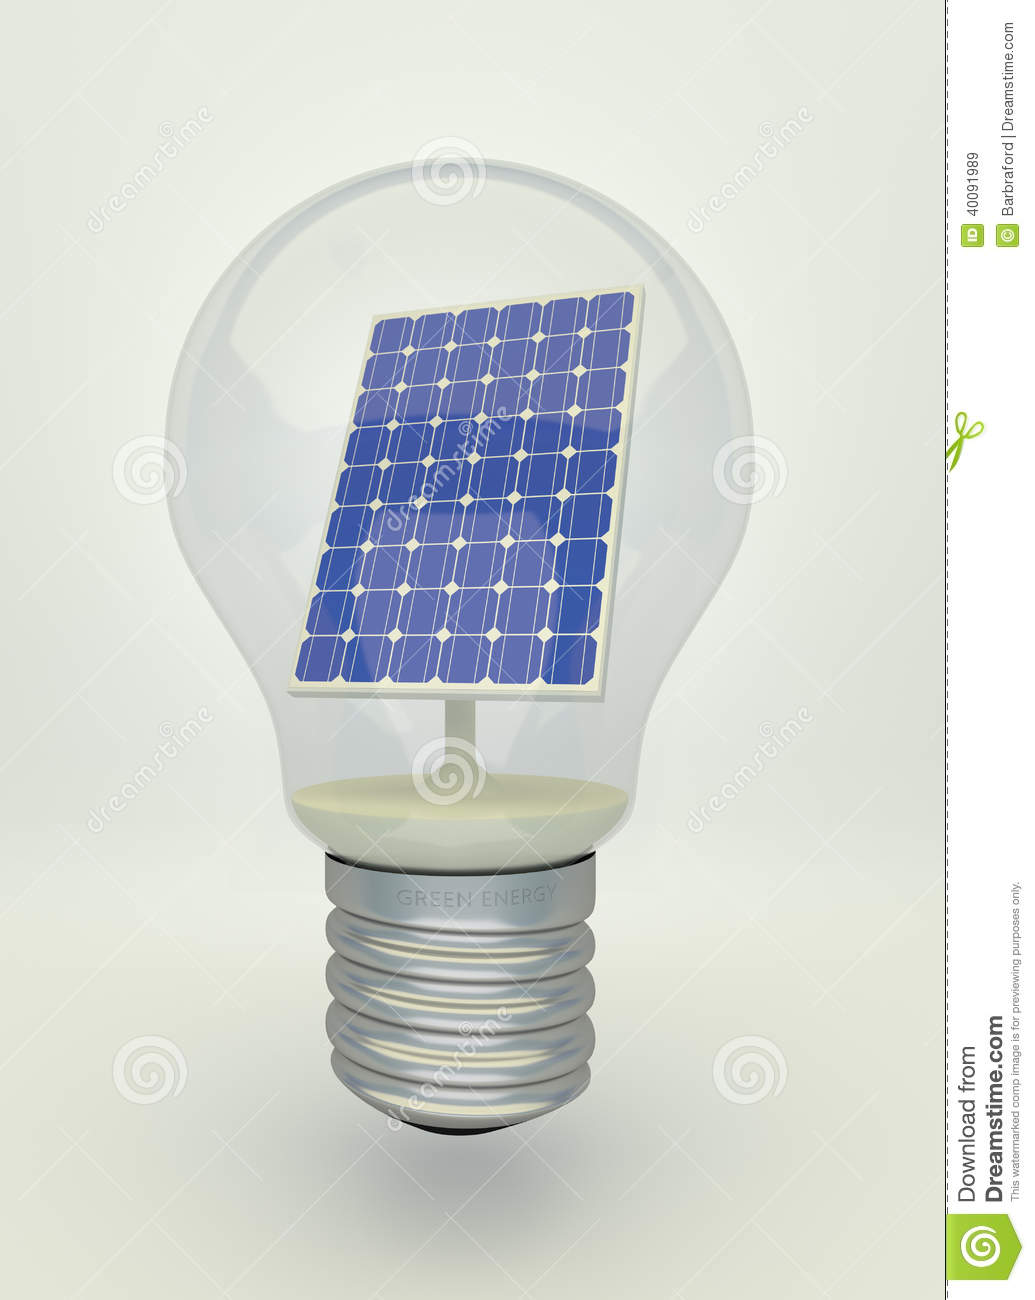 travel map generator with Royalty Free Stock Images Solar Panel Light Bulb Inside Eco Image40091989 on Alternative Energy in addition Stock Image Electric Power Image18045071 furthermore Expense Analysis Dashboard together with Spain Facts besides How To Build A Customer Journey Map That Works.